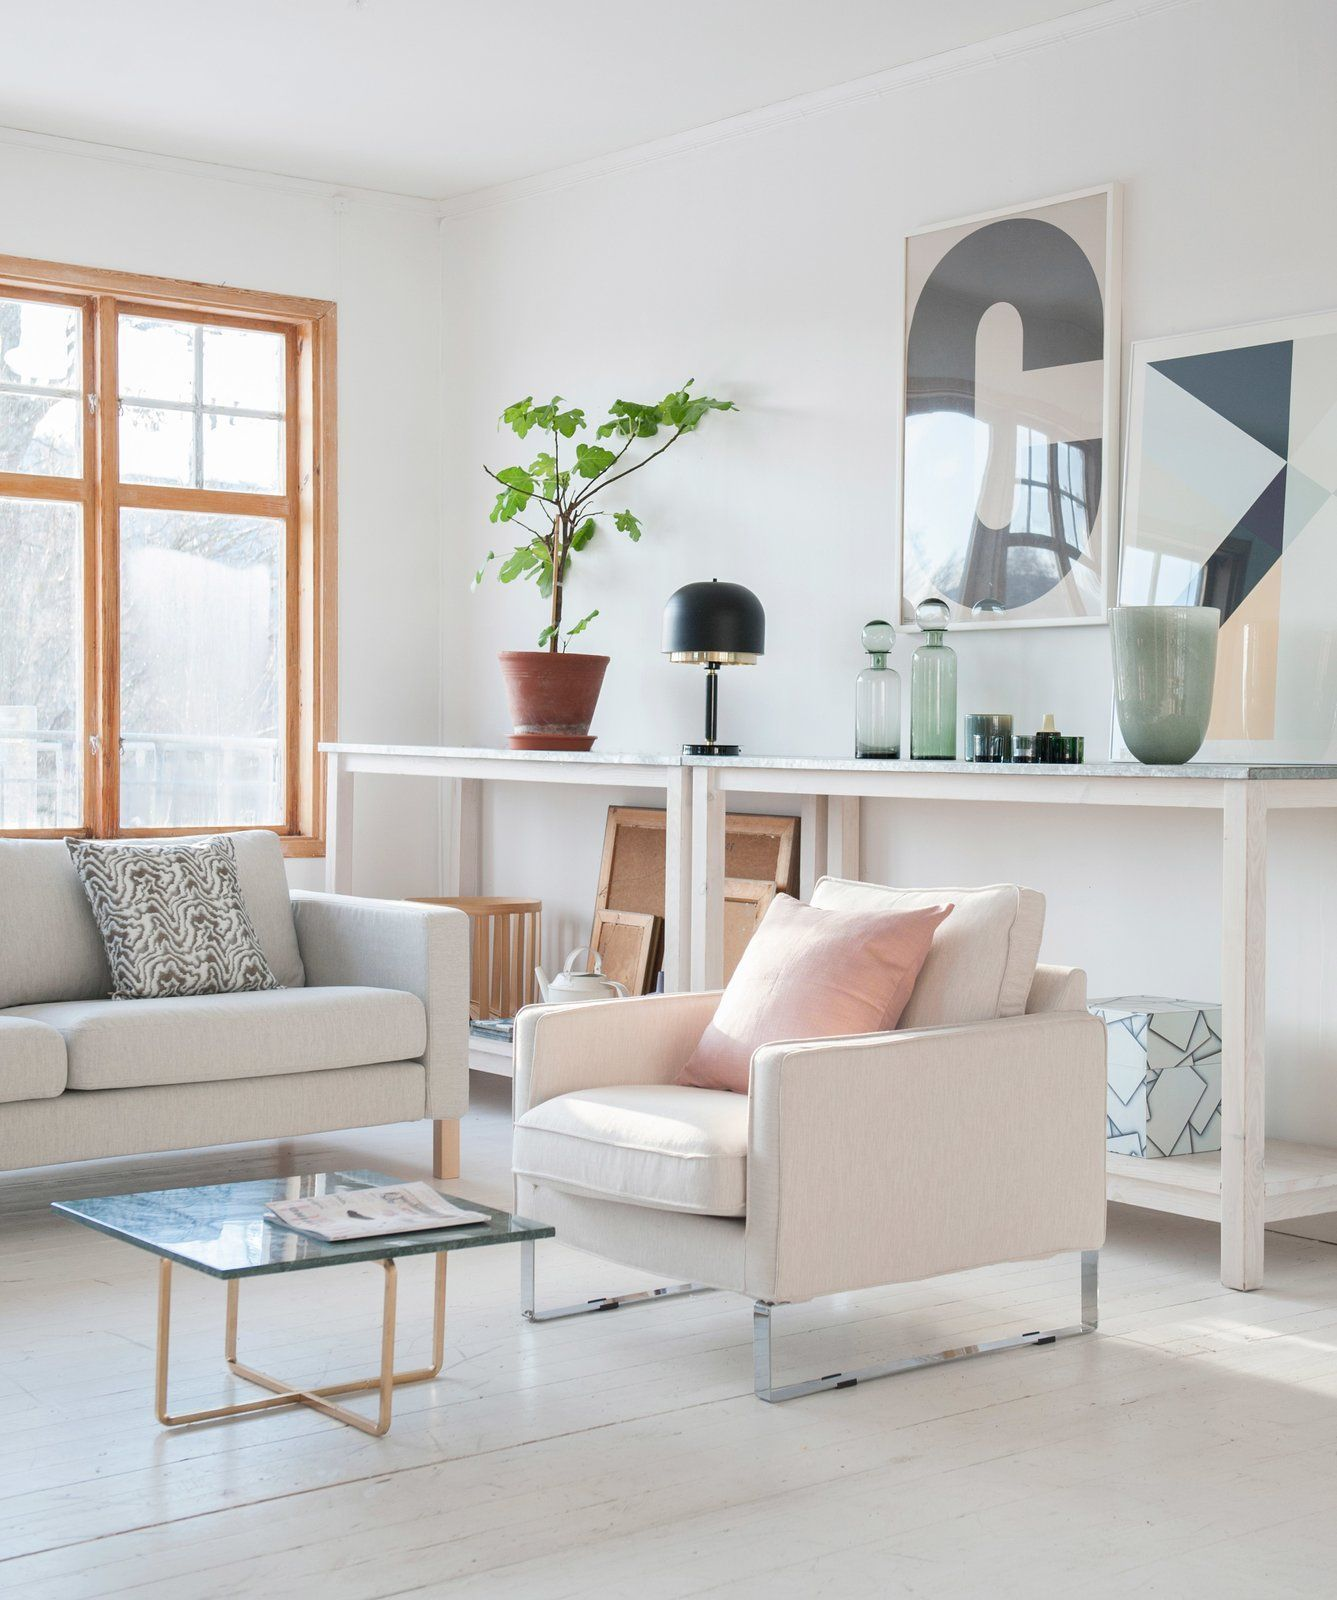 Small living rooms room designs decor ikea furniture also pin by beatiful design ideas home and art on rh pinterest